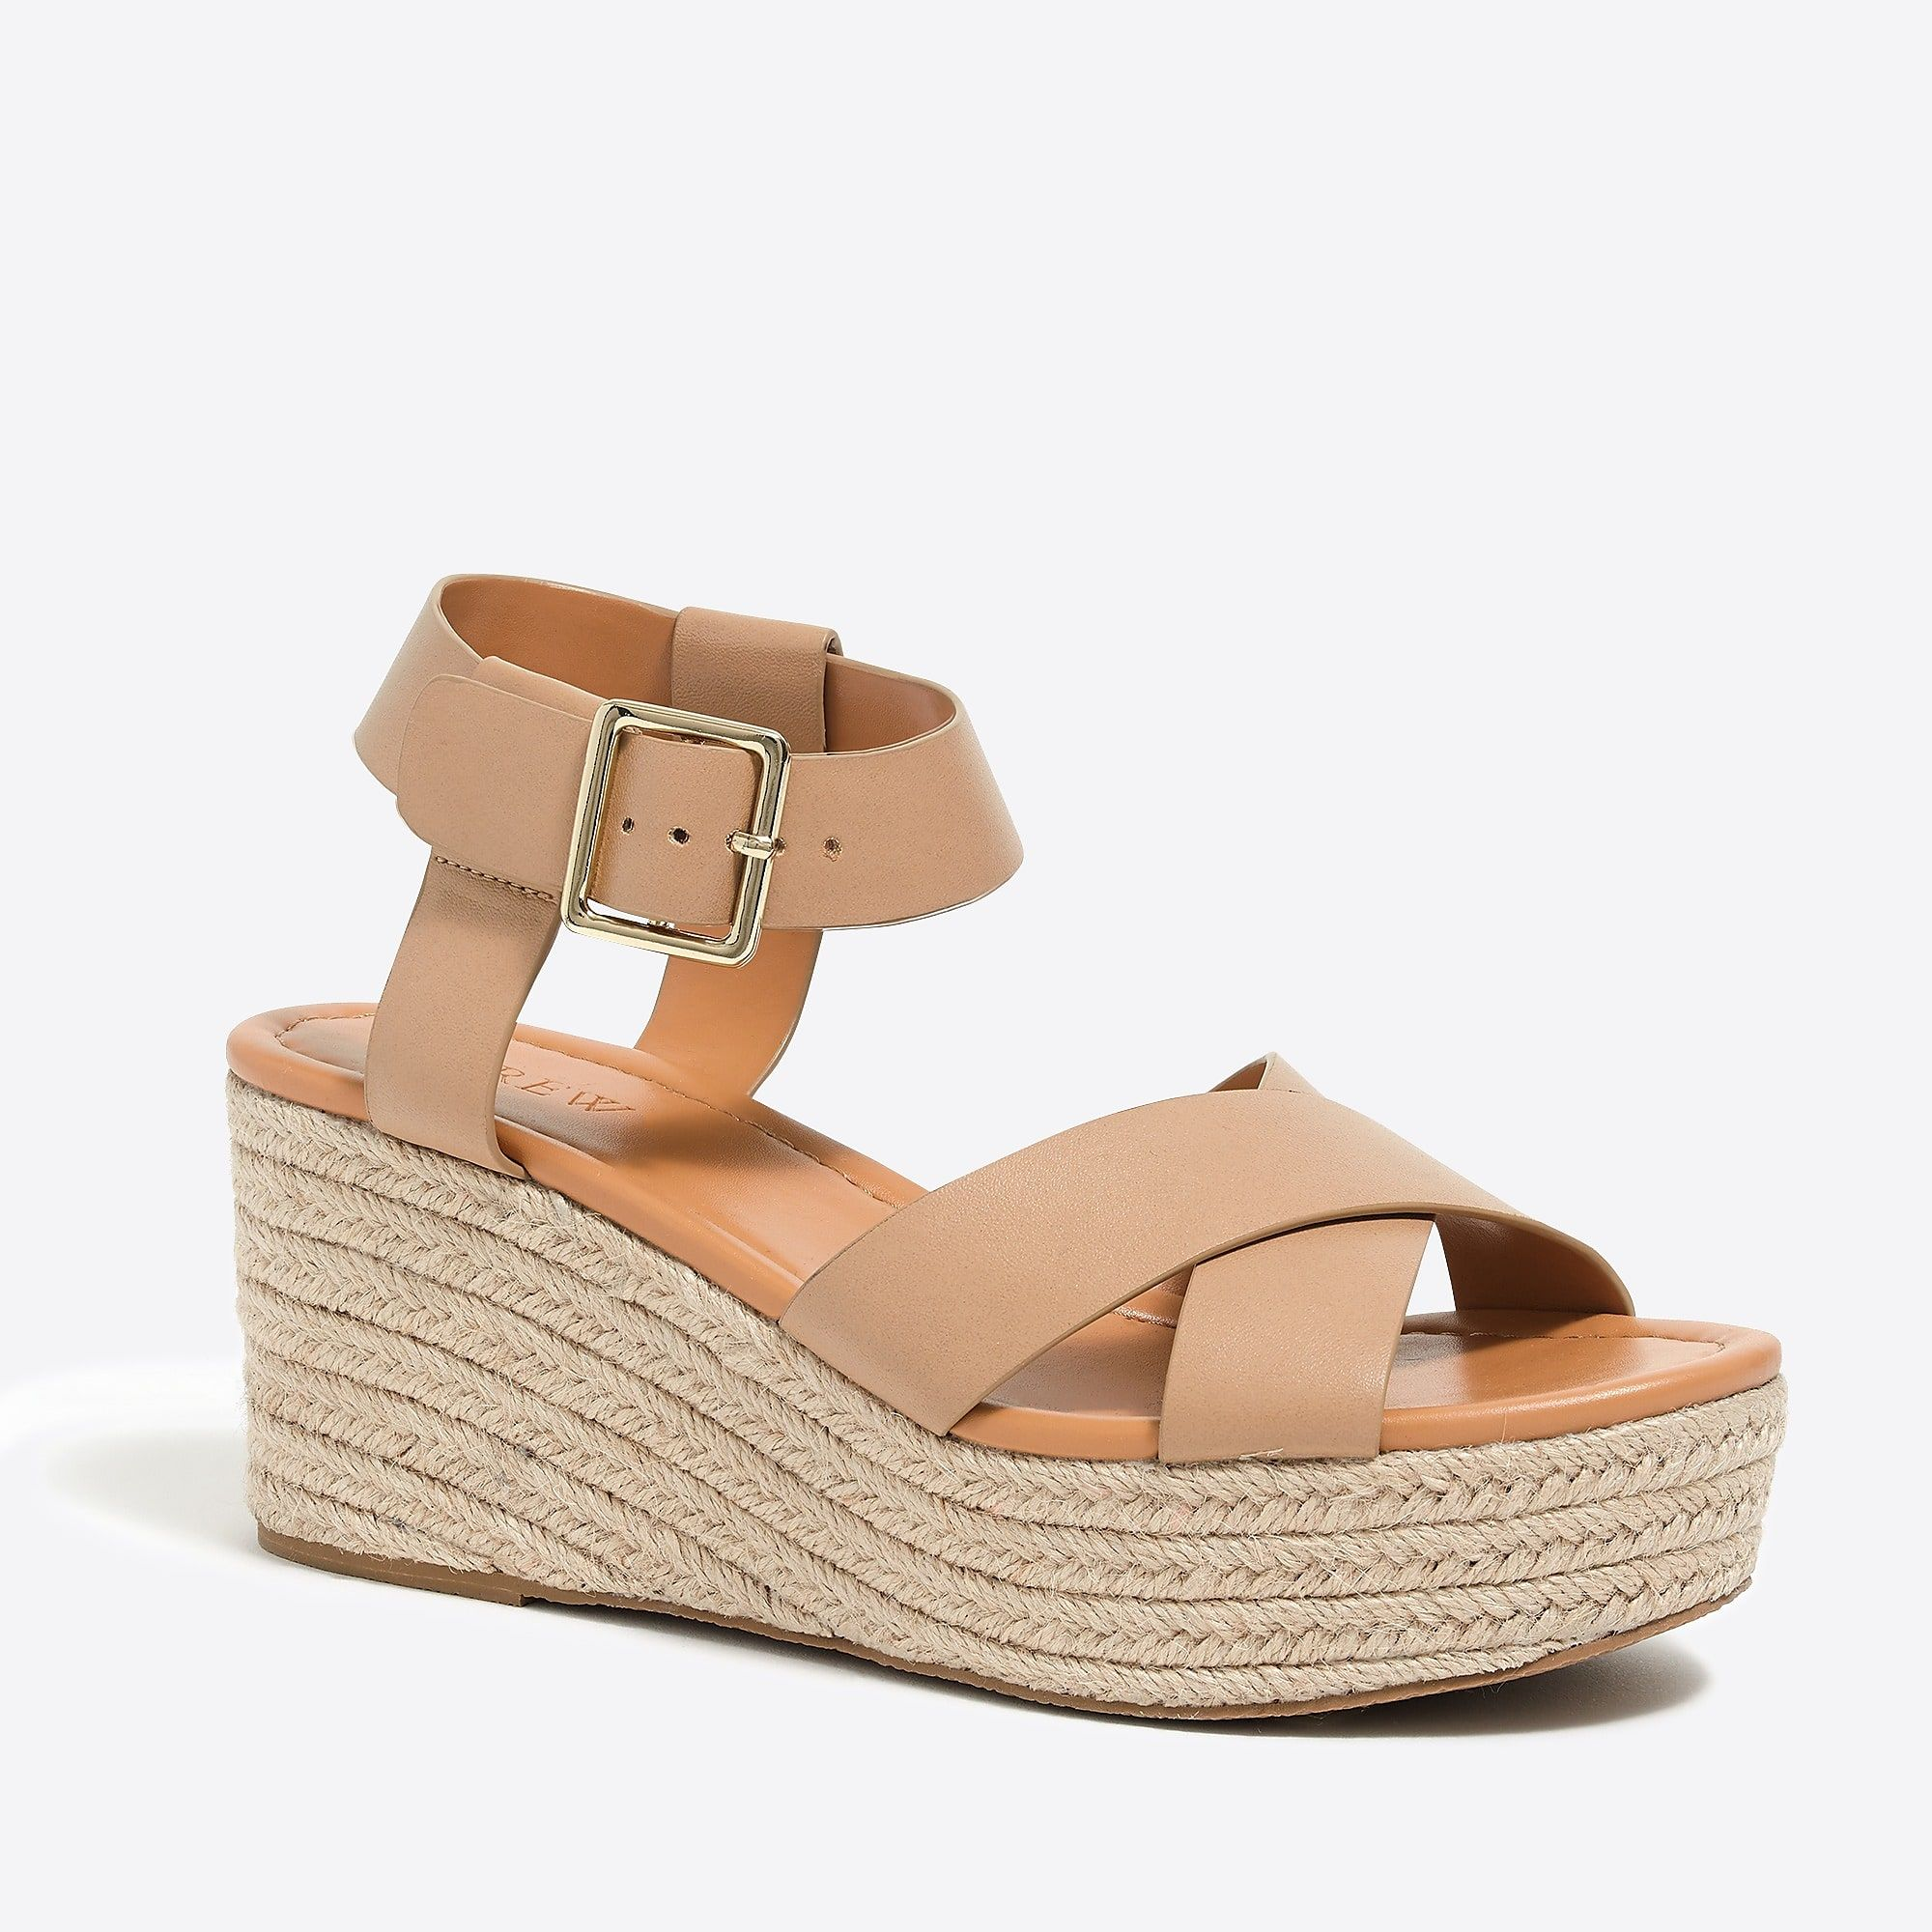 4796f772267 J.Crew Flatform espadrille sandals in 2019 | IN love with ...